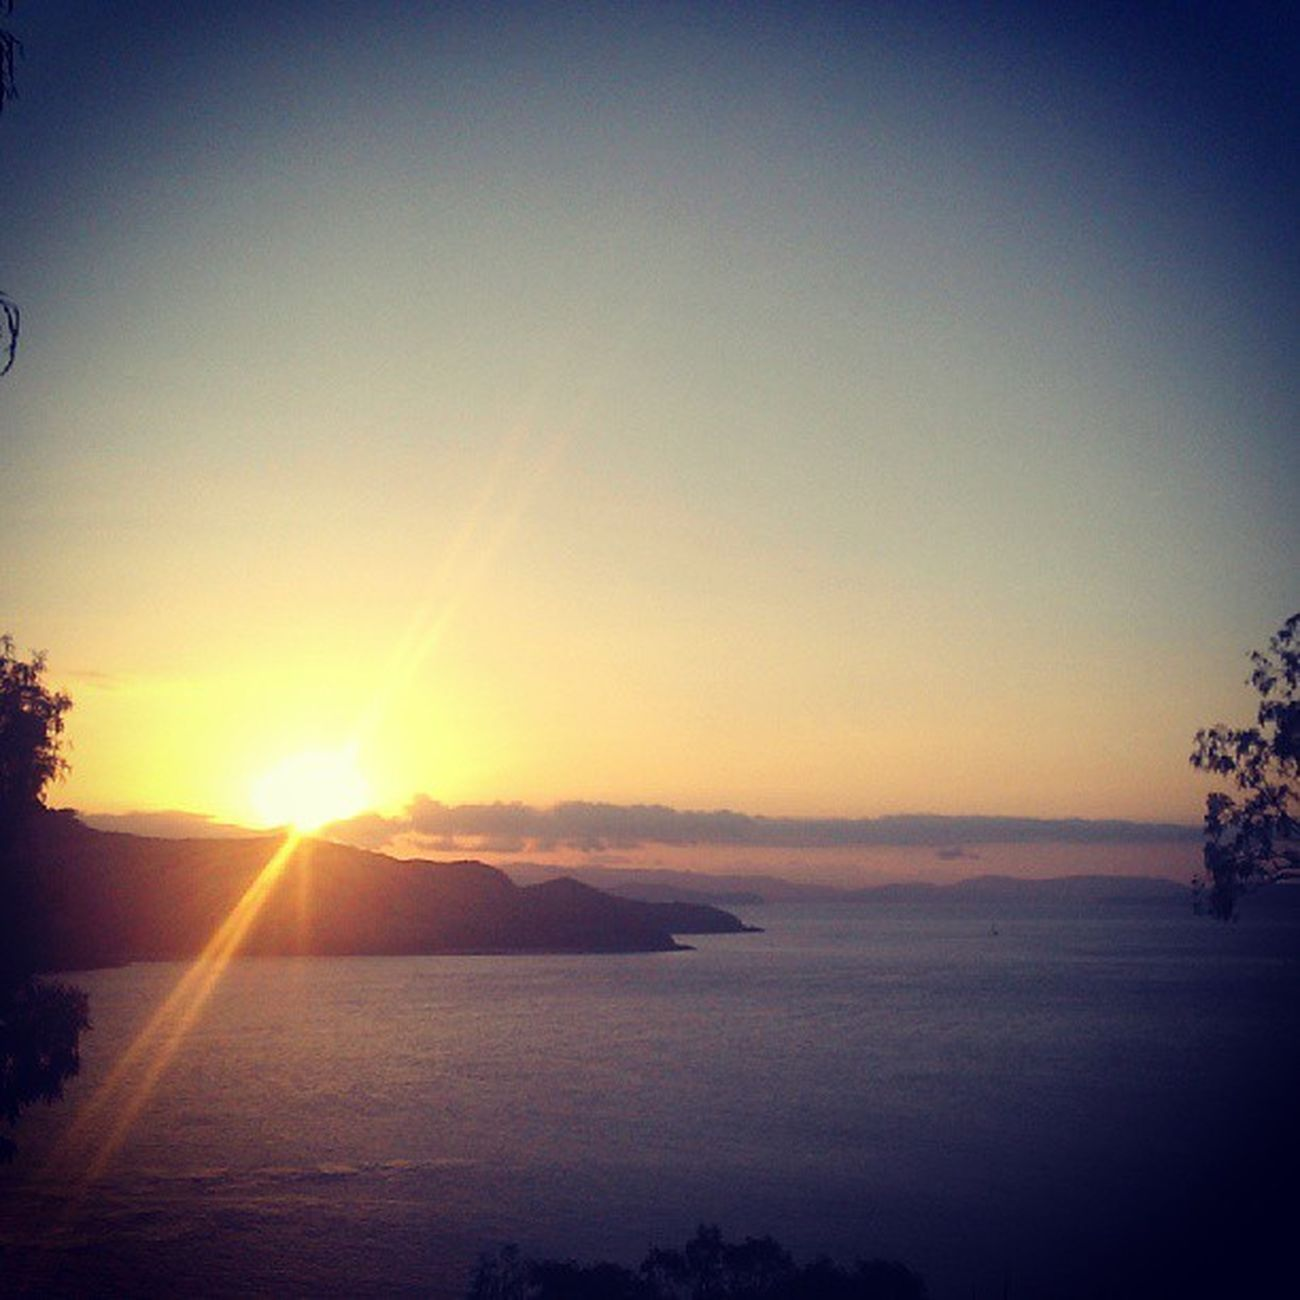 Last sunset with a g'n't Ilovethisplace Hamiltonisland Dontwannagohome